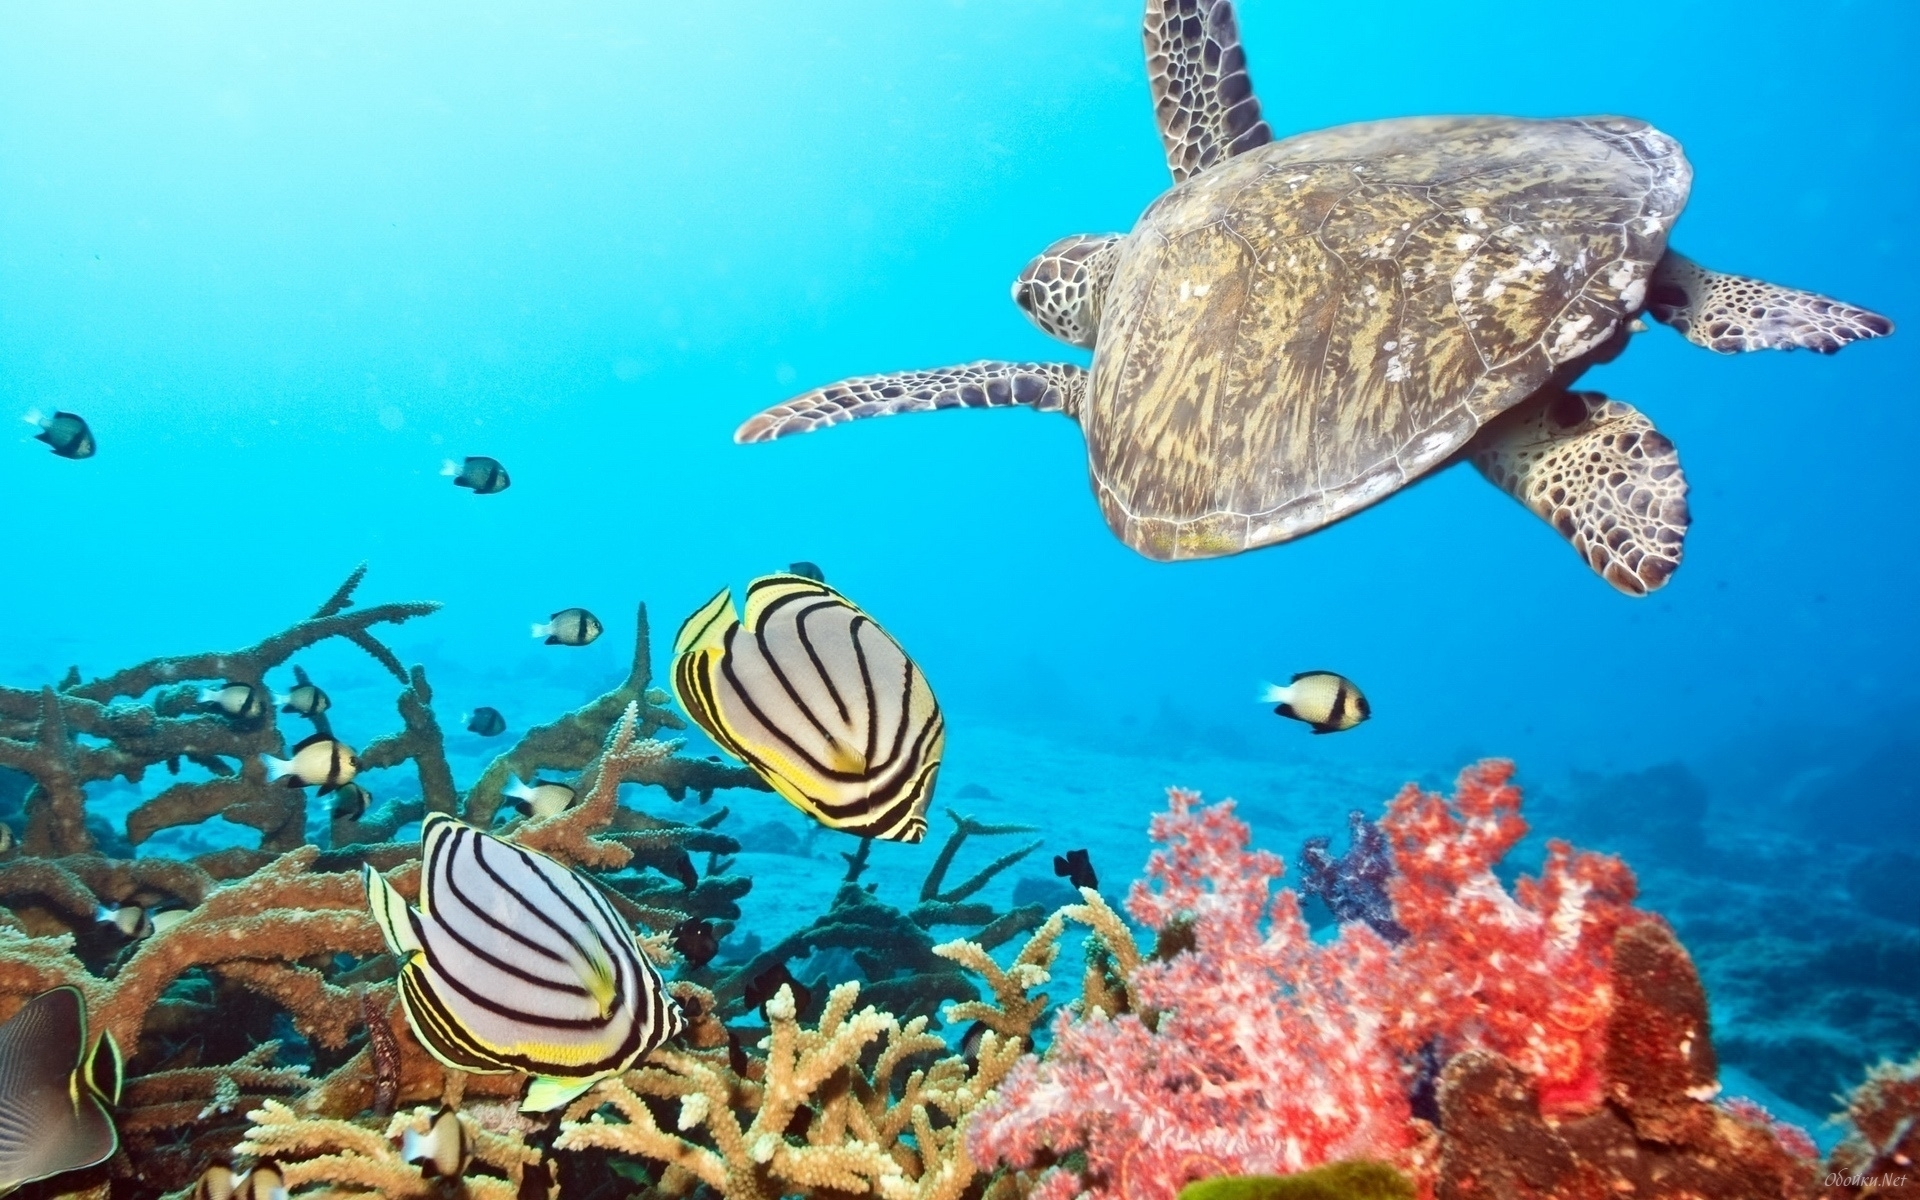 Download mobile wallpaper Animals, Turtles, Sea, Fishes for free.